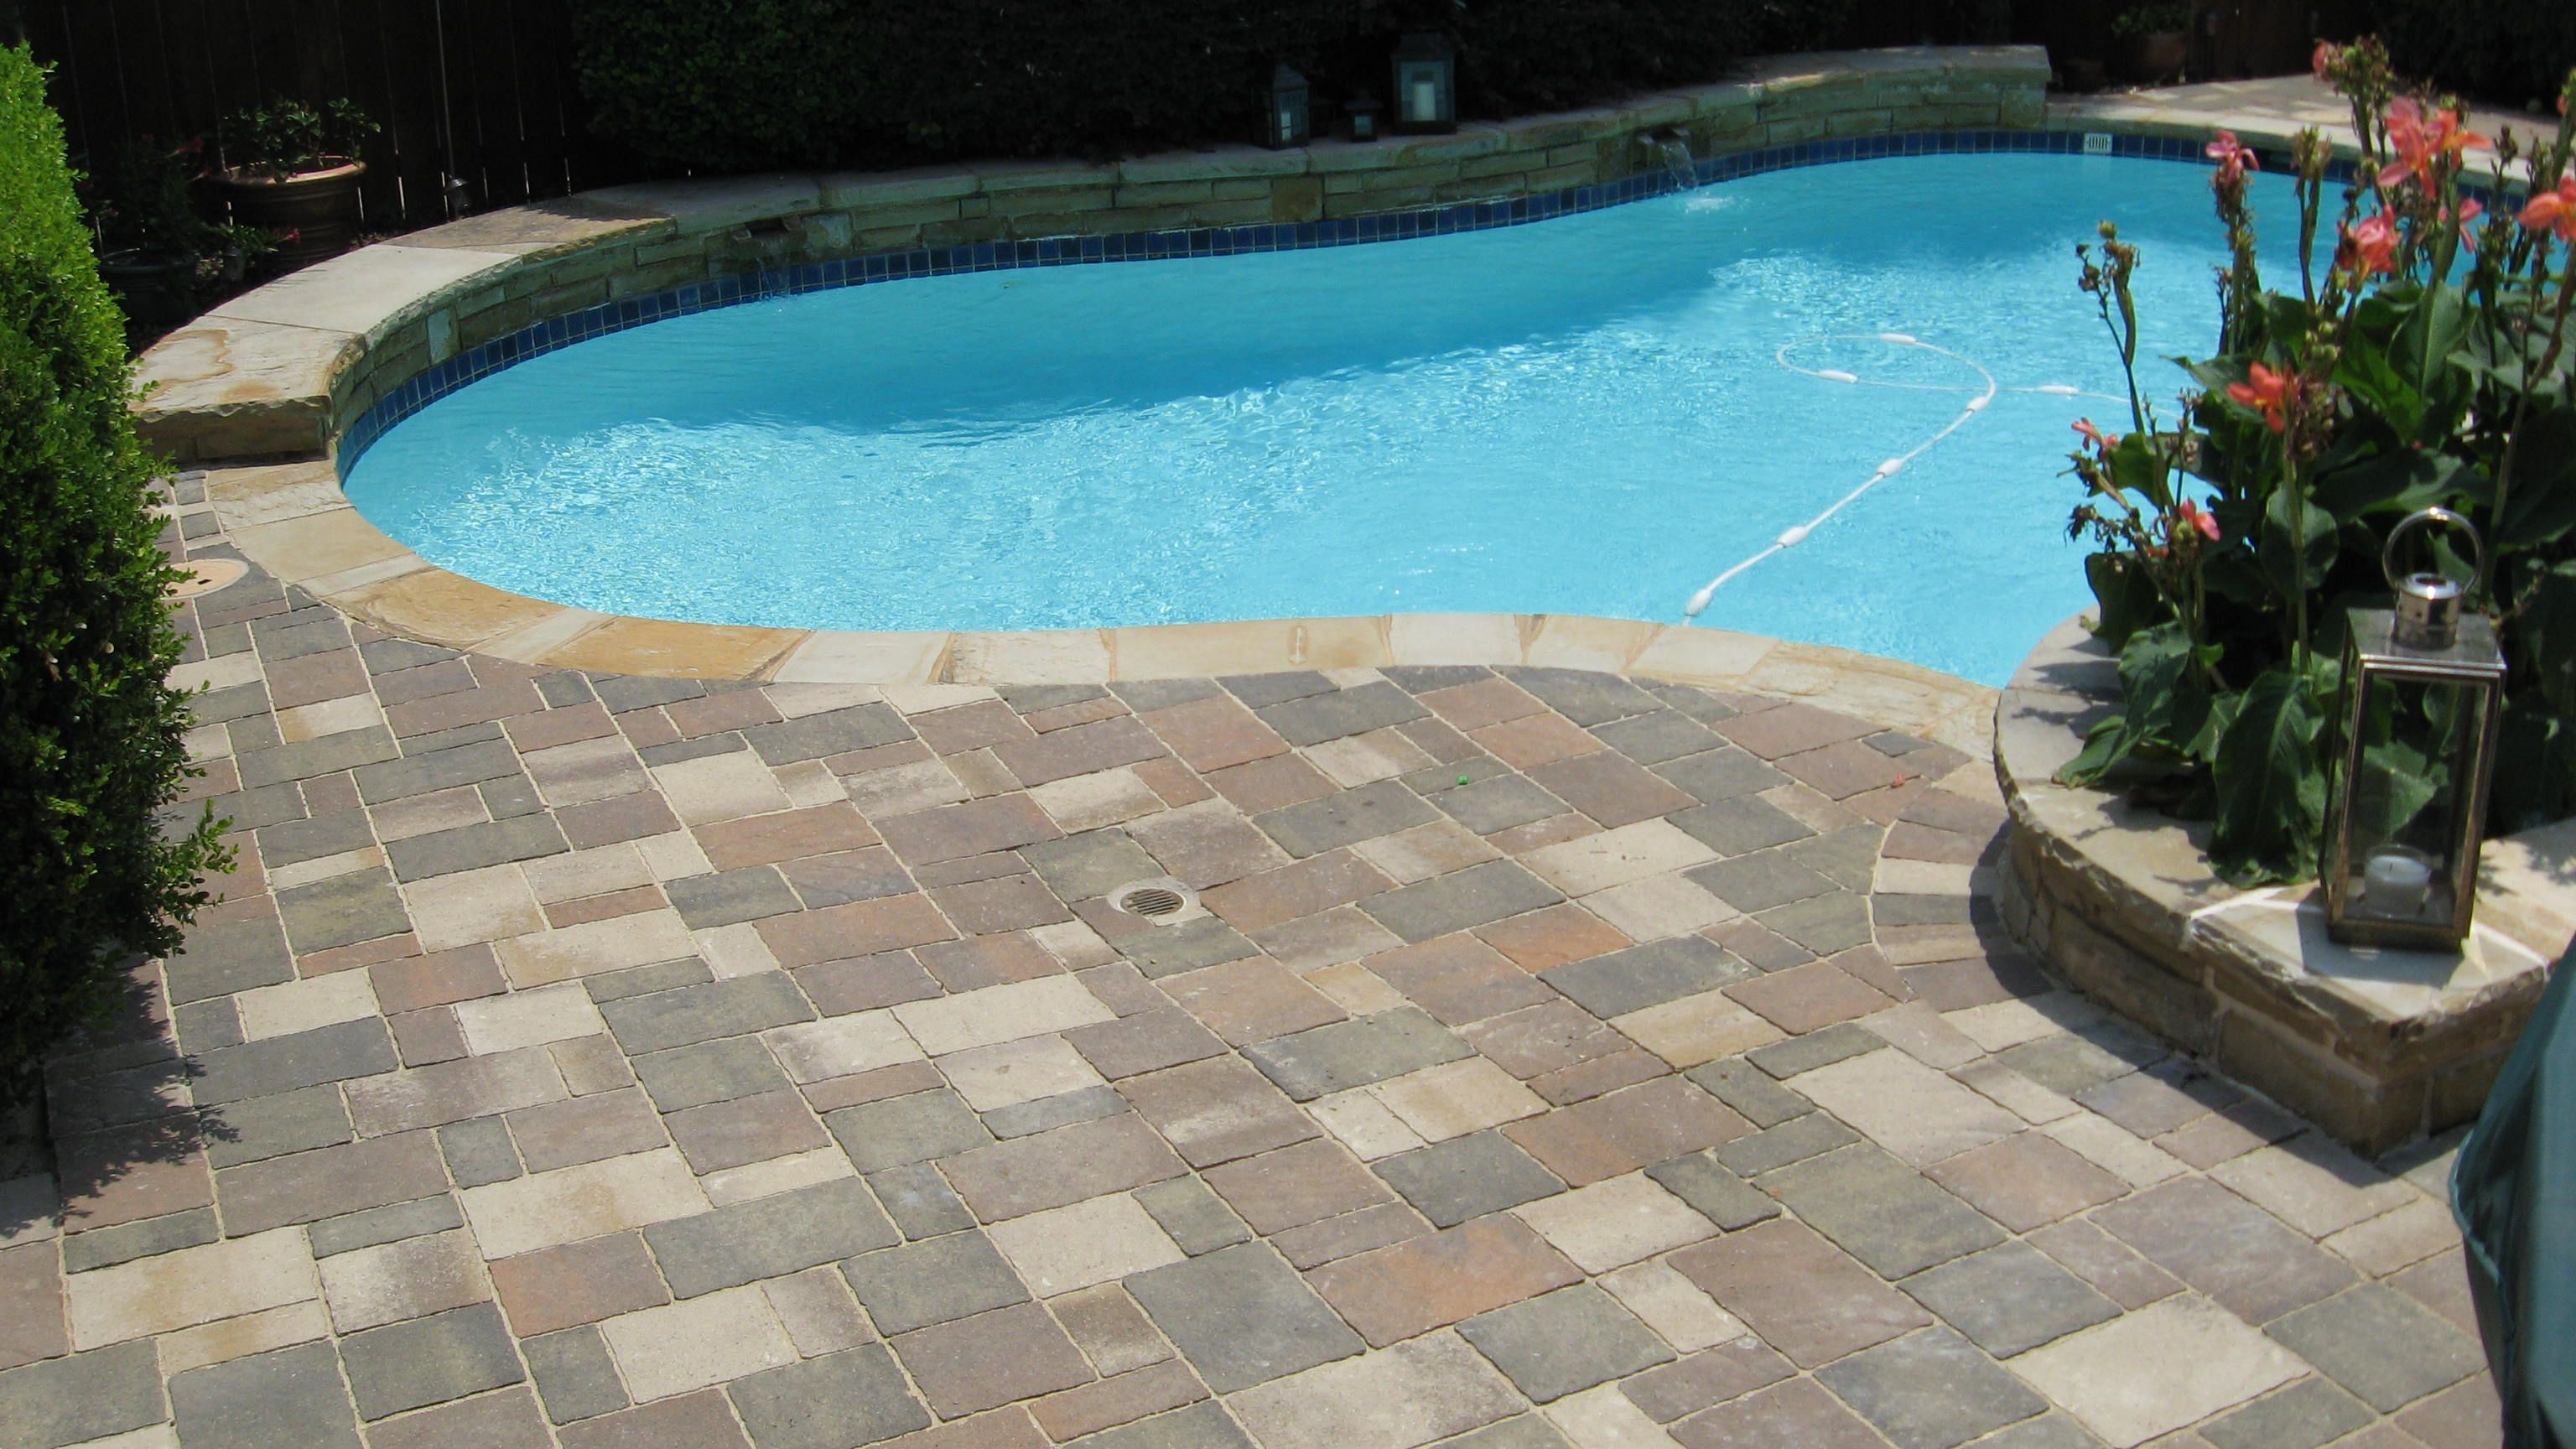 Cheap Pavers Pool Deck Pavers Will Compliment A New Pool Like No Other Surface Option